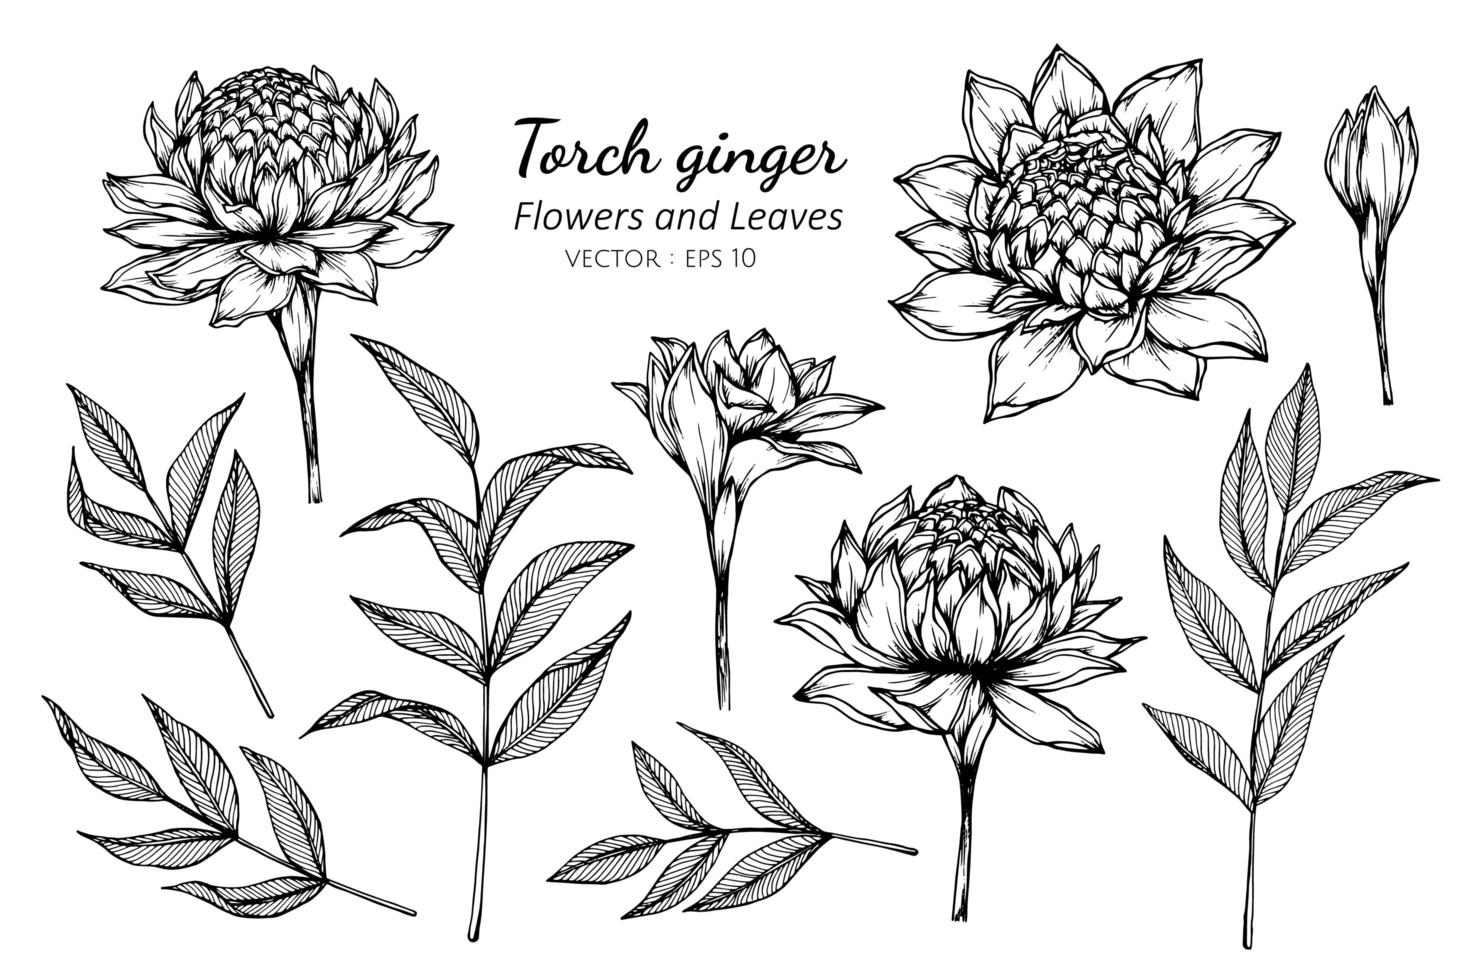 Collection of Torch Ginger flowers and leaves vector